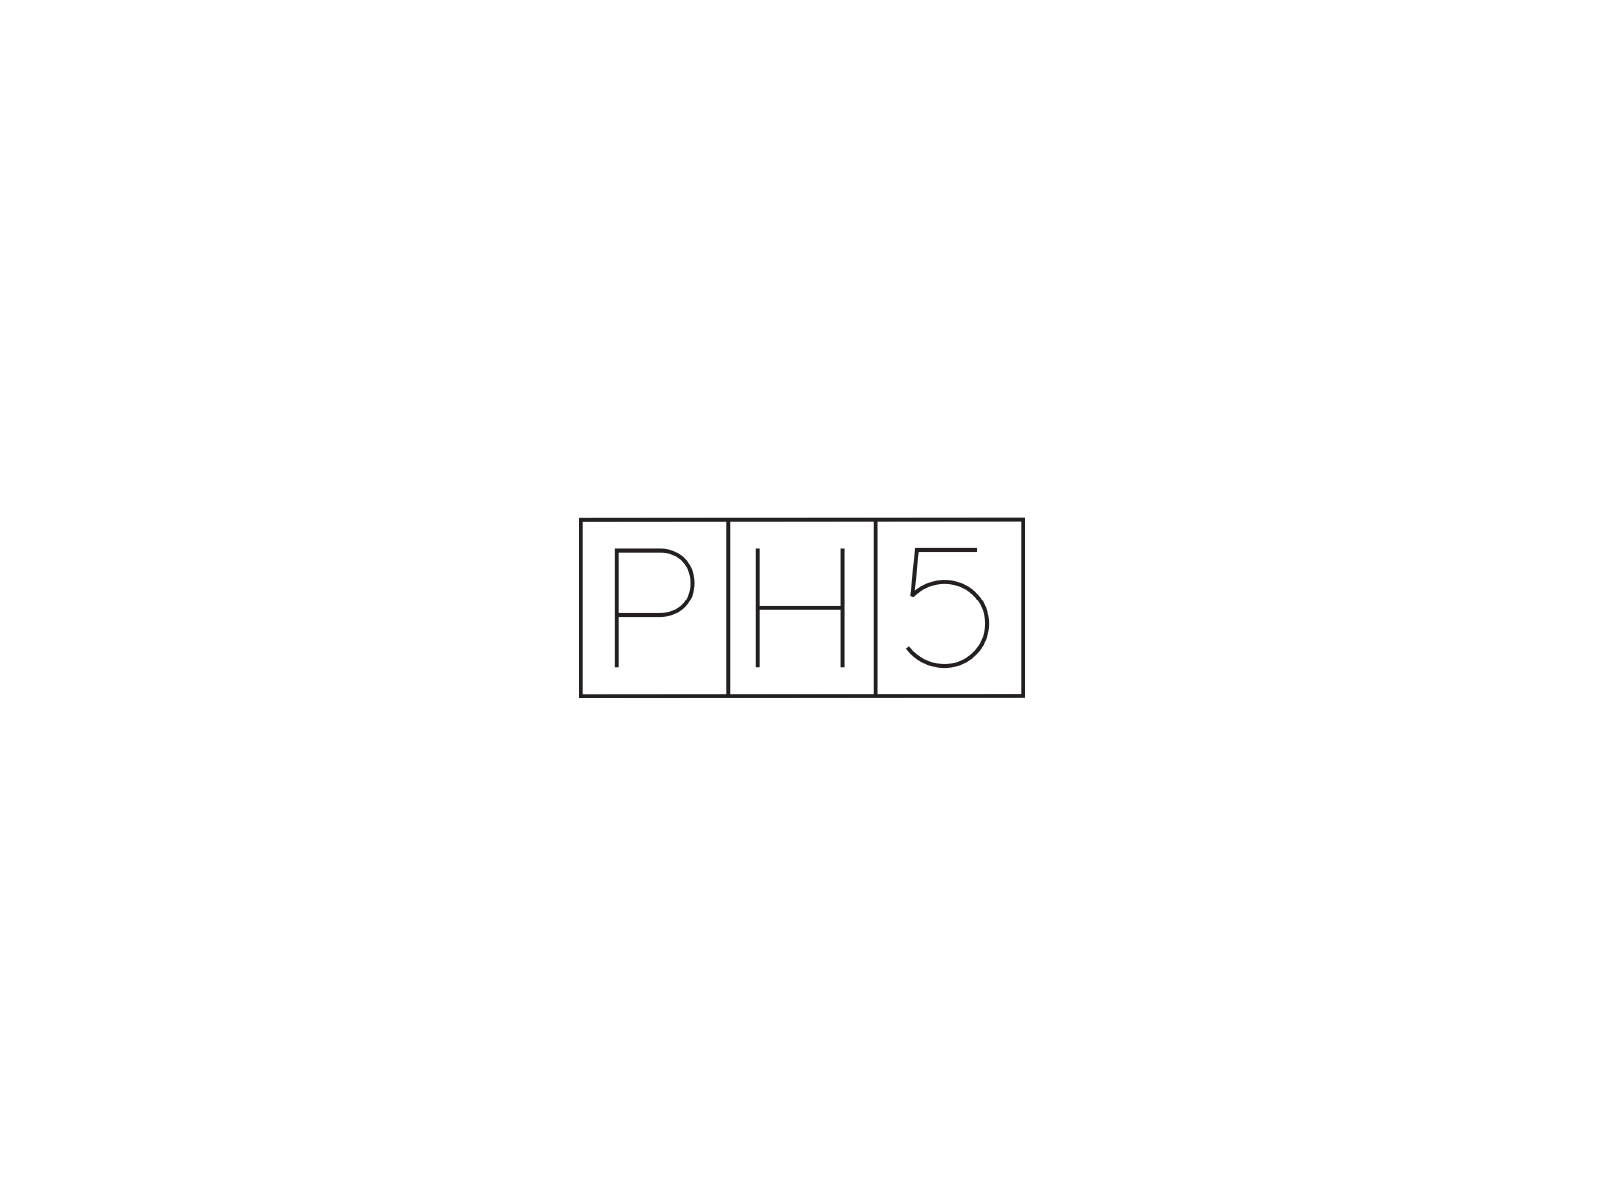 image of PH5